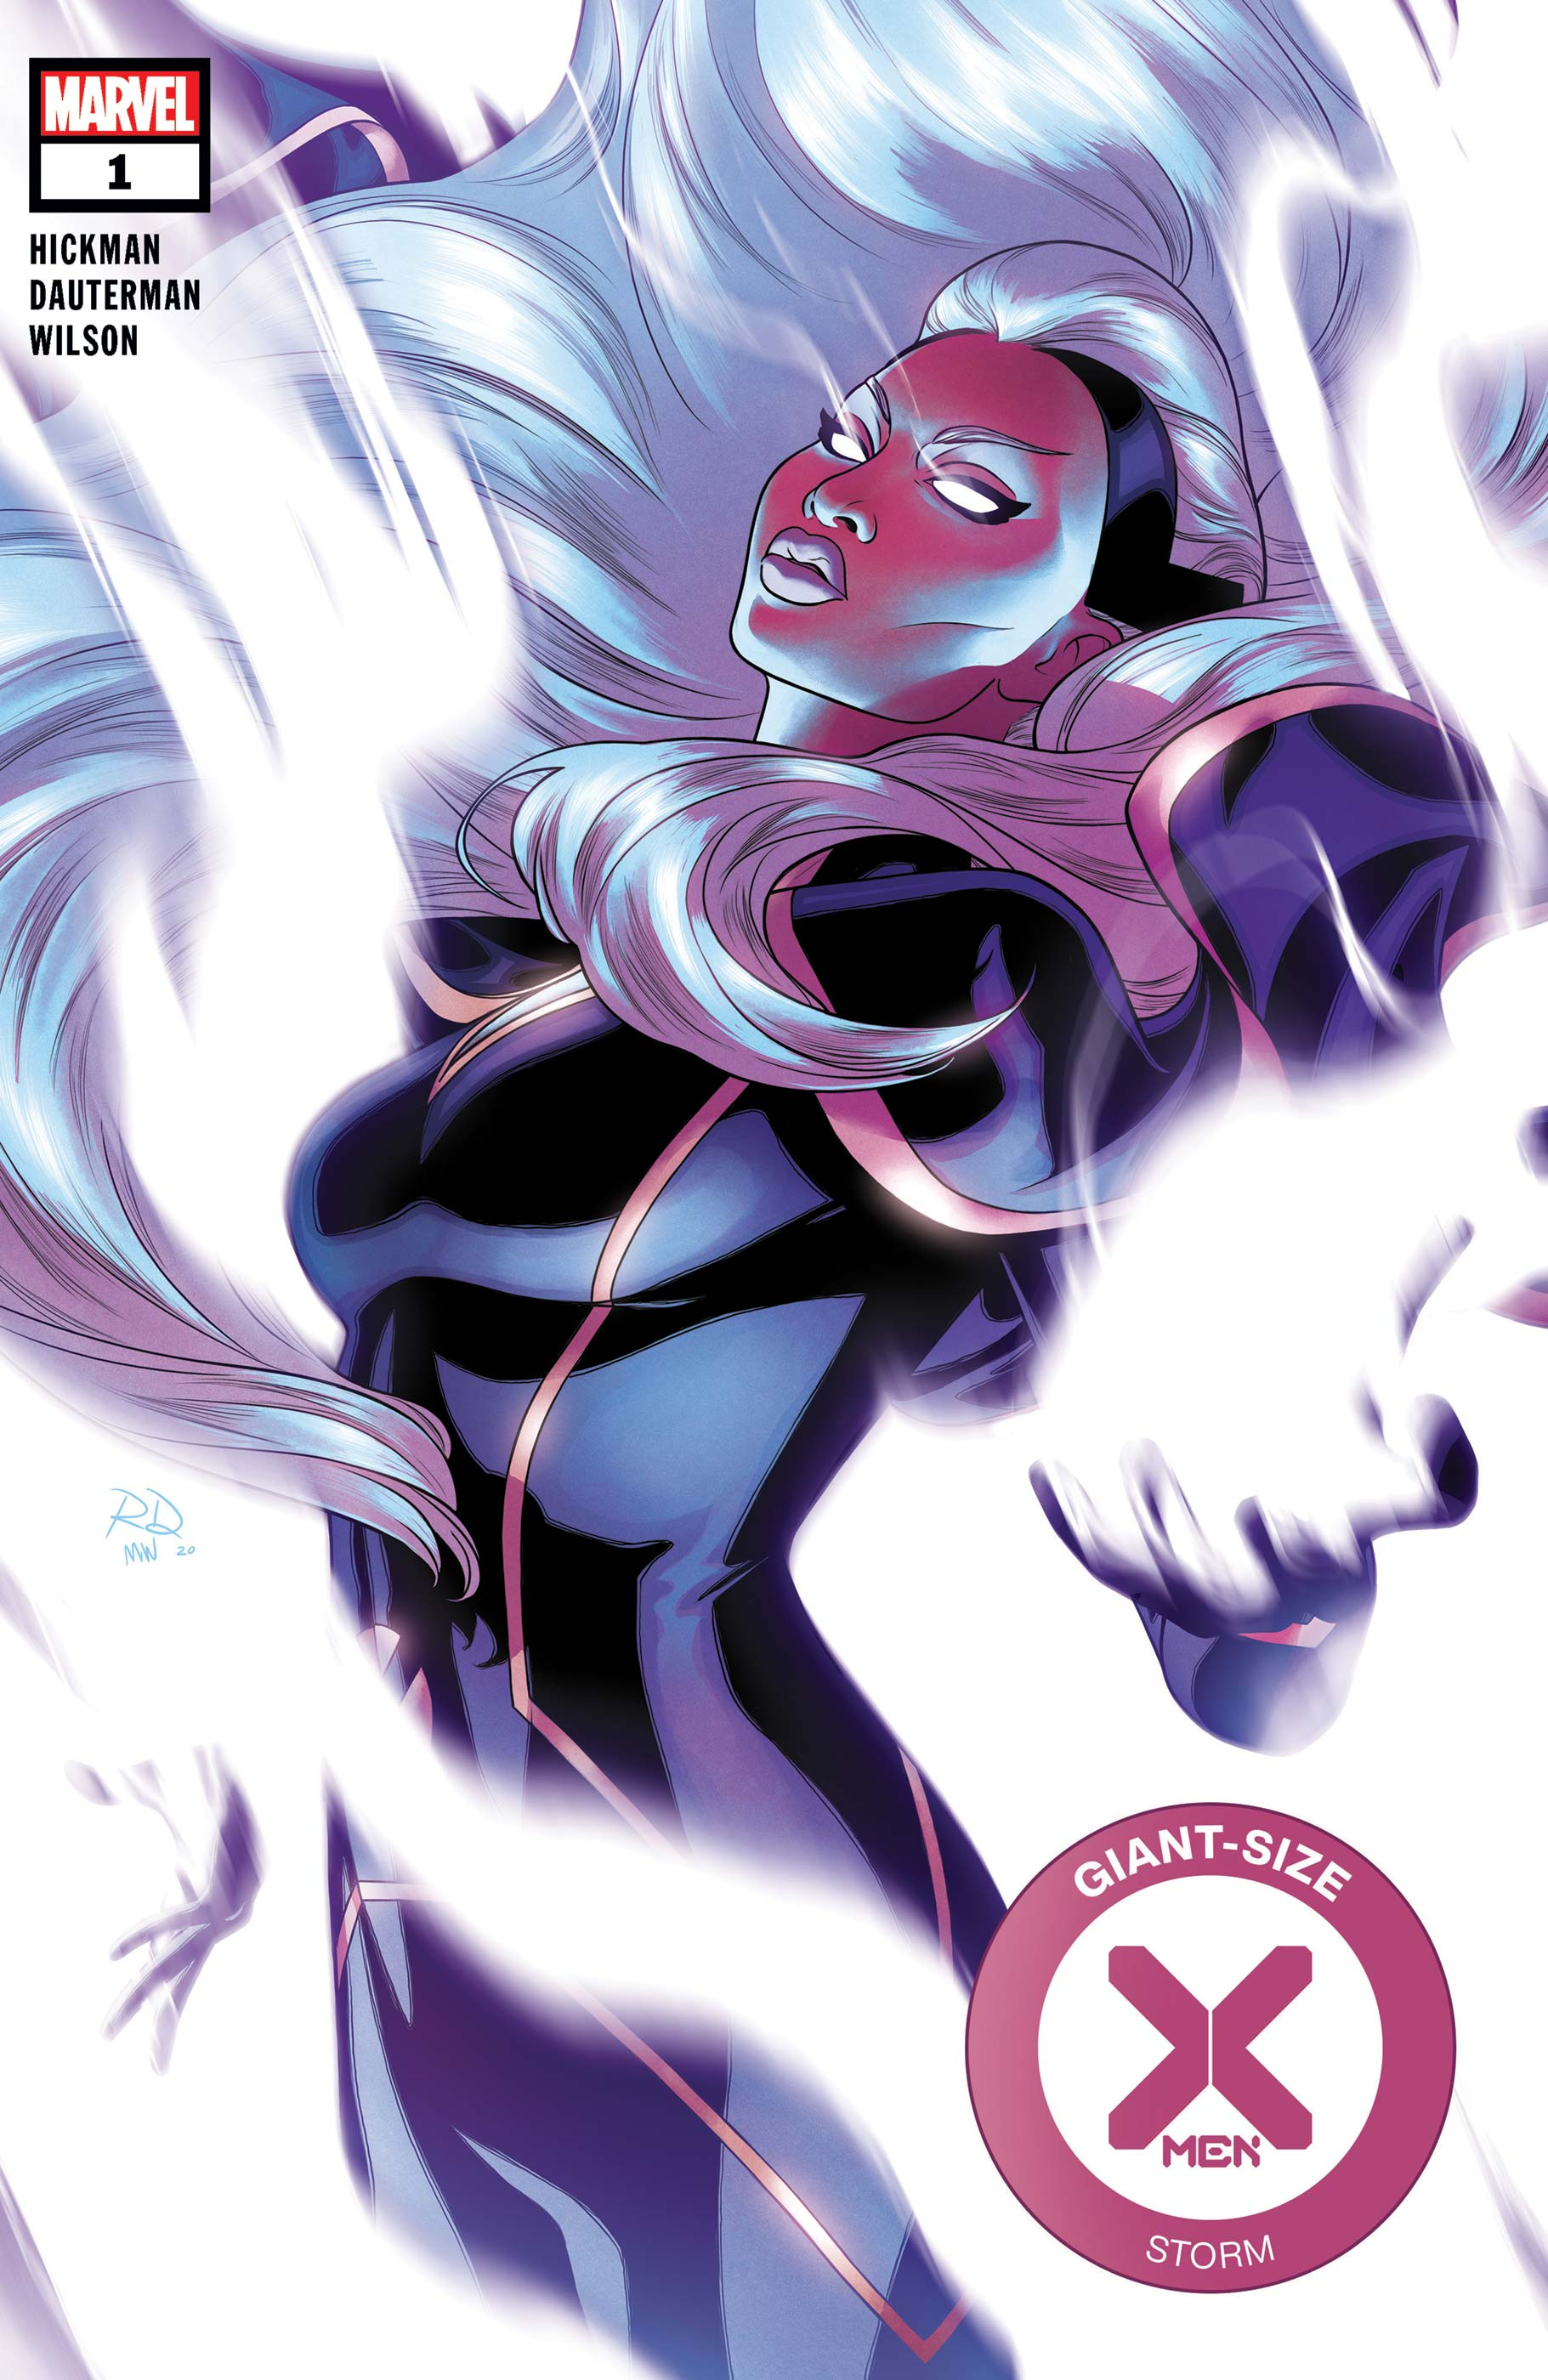 Giant-Size X-Men: Storm (2020) #1